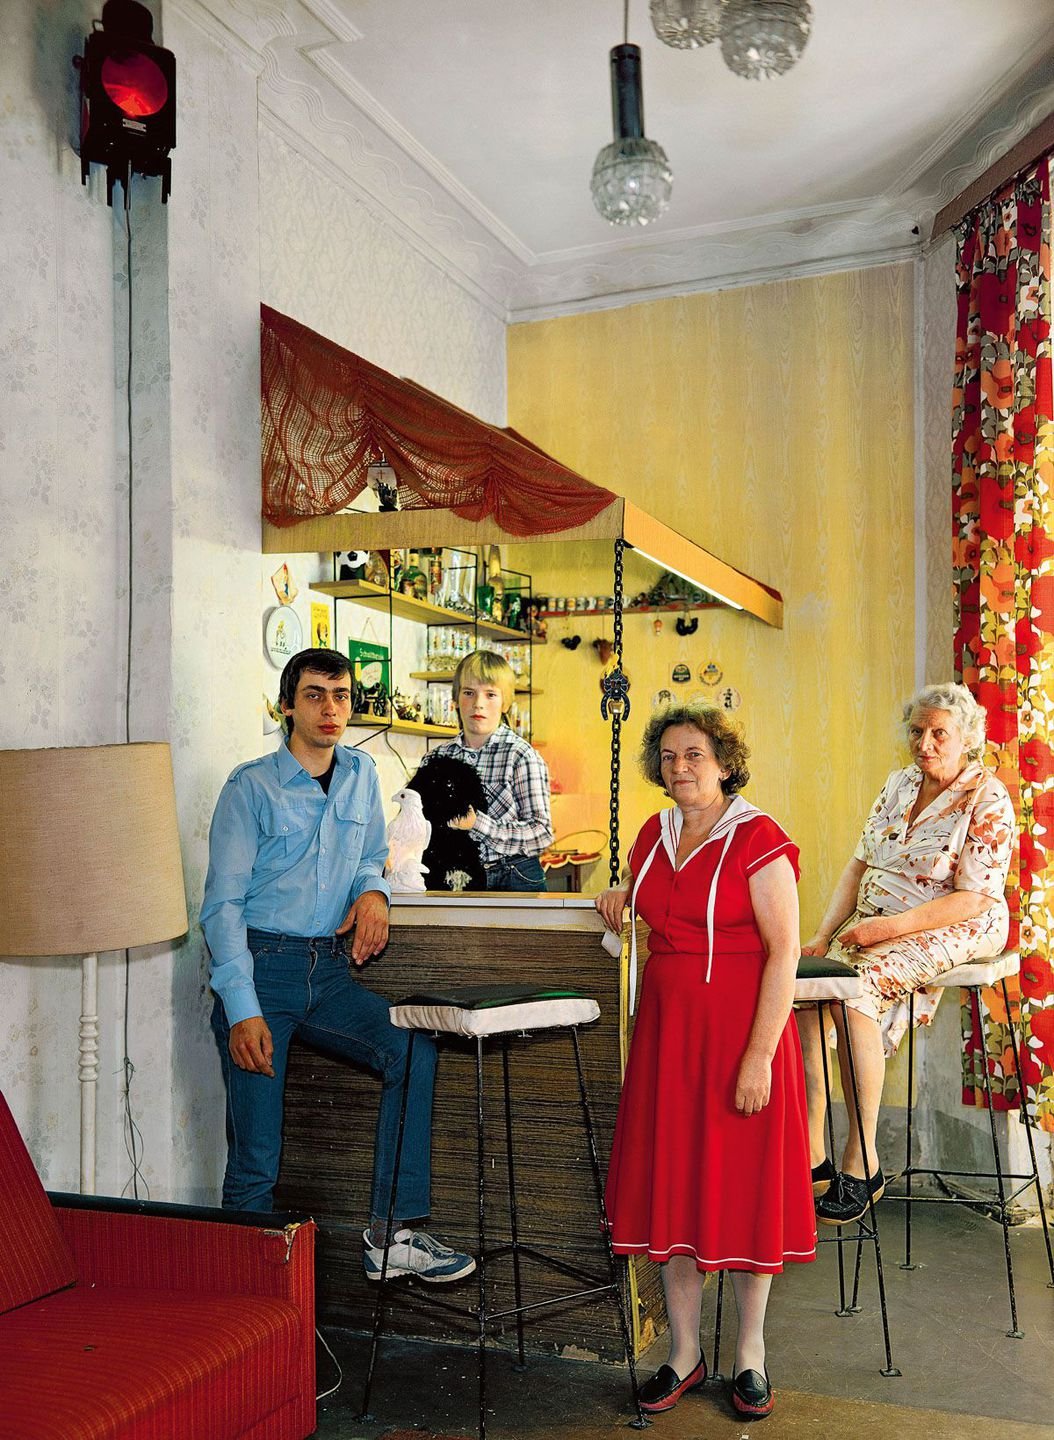 ngeborg (front, cleaner), her son Lothar (left, carpenter), her grandson Guido and their grandmother.